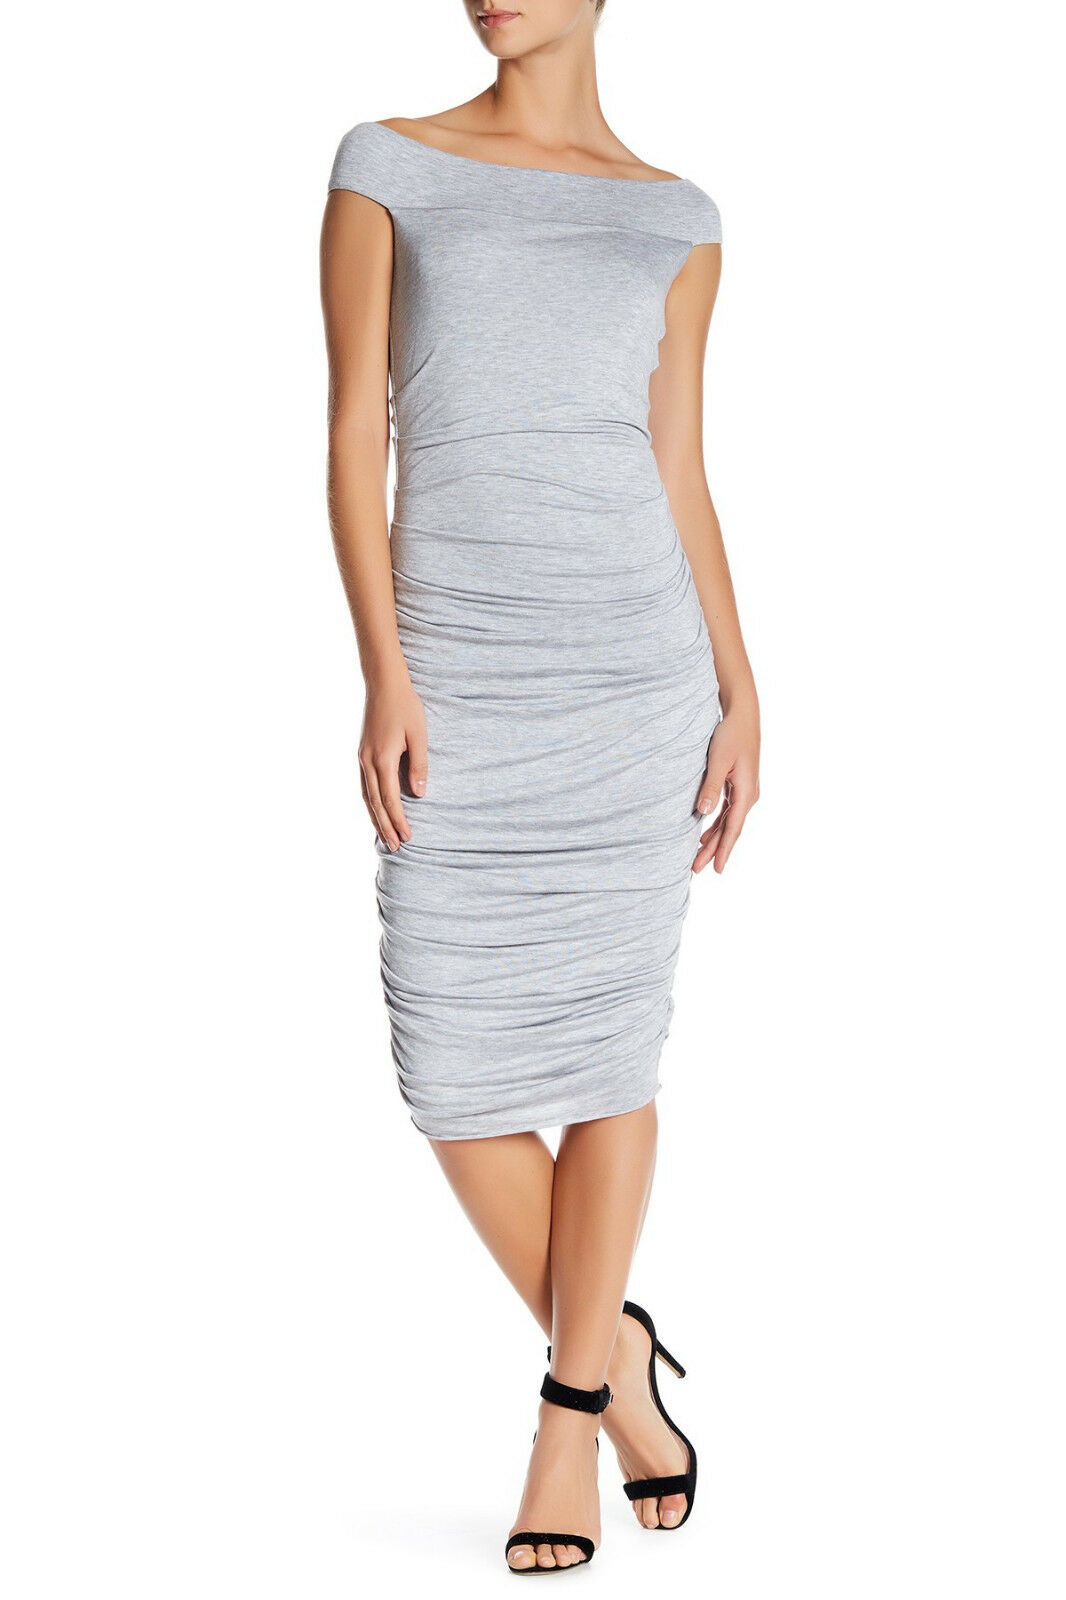 Bailey 44 Off-the-Shoulder Ruched Dress grau S MSRP